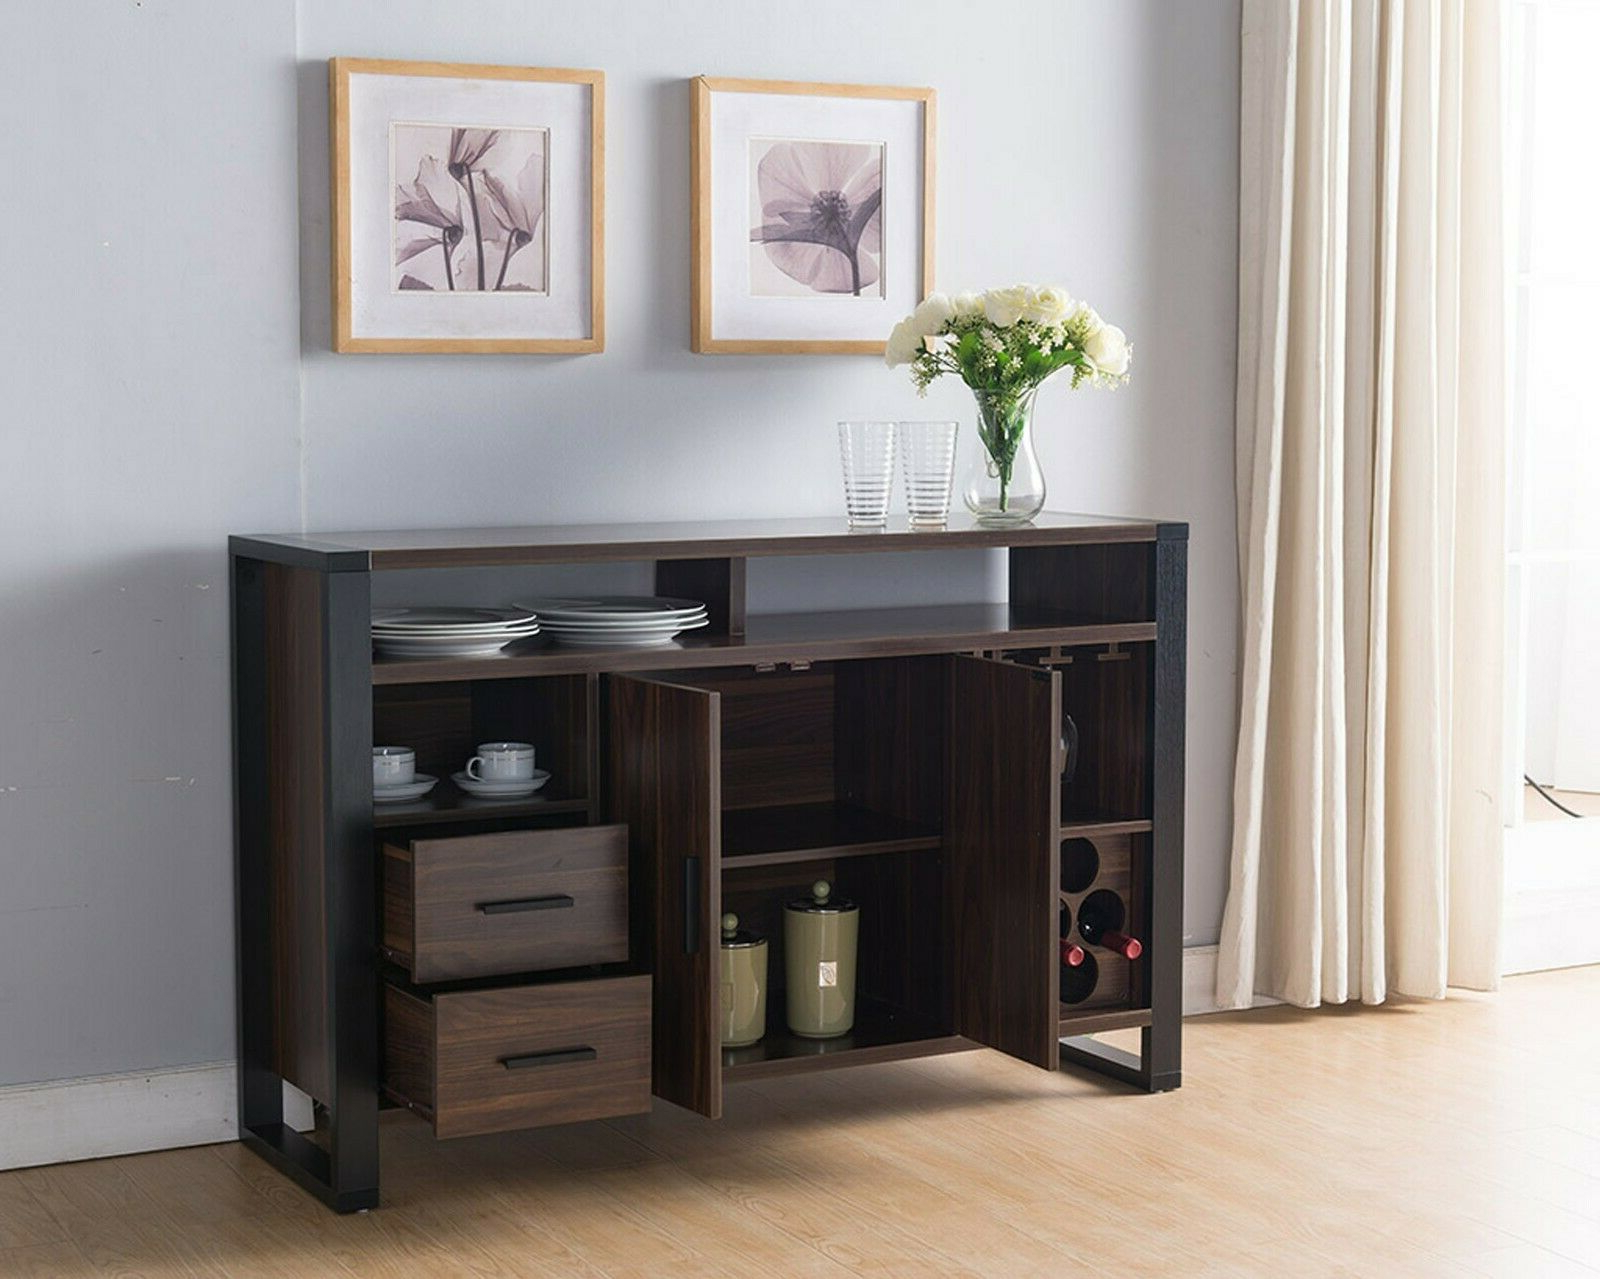 161640 Smart Home Dark Walnut & Black Wine Bar Sideboard Buffet Table Pertaining To Sideboards By Wildon Home (View 4 of 20)